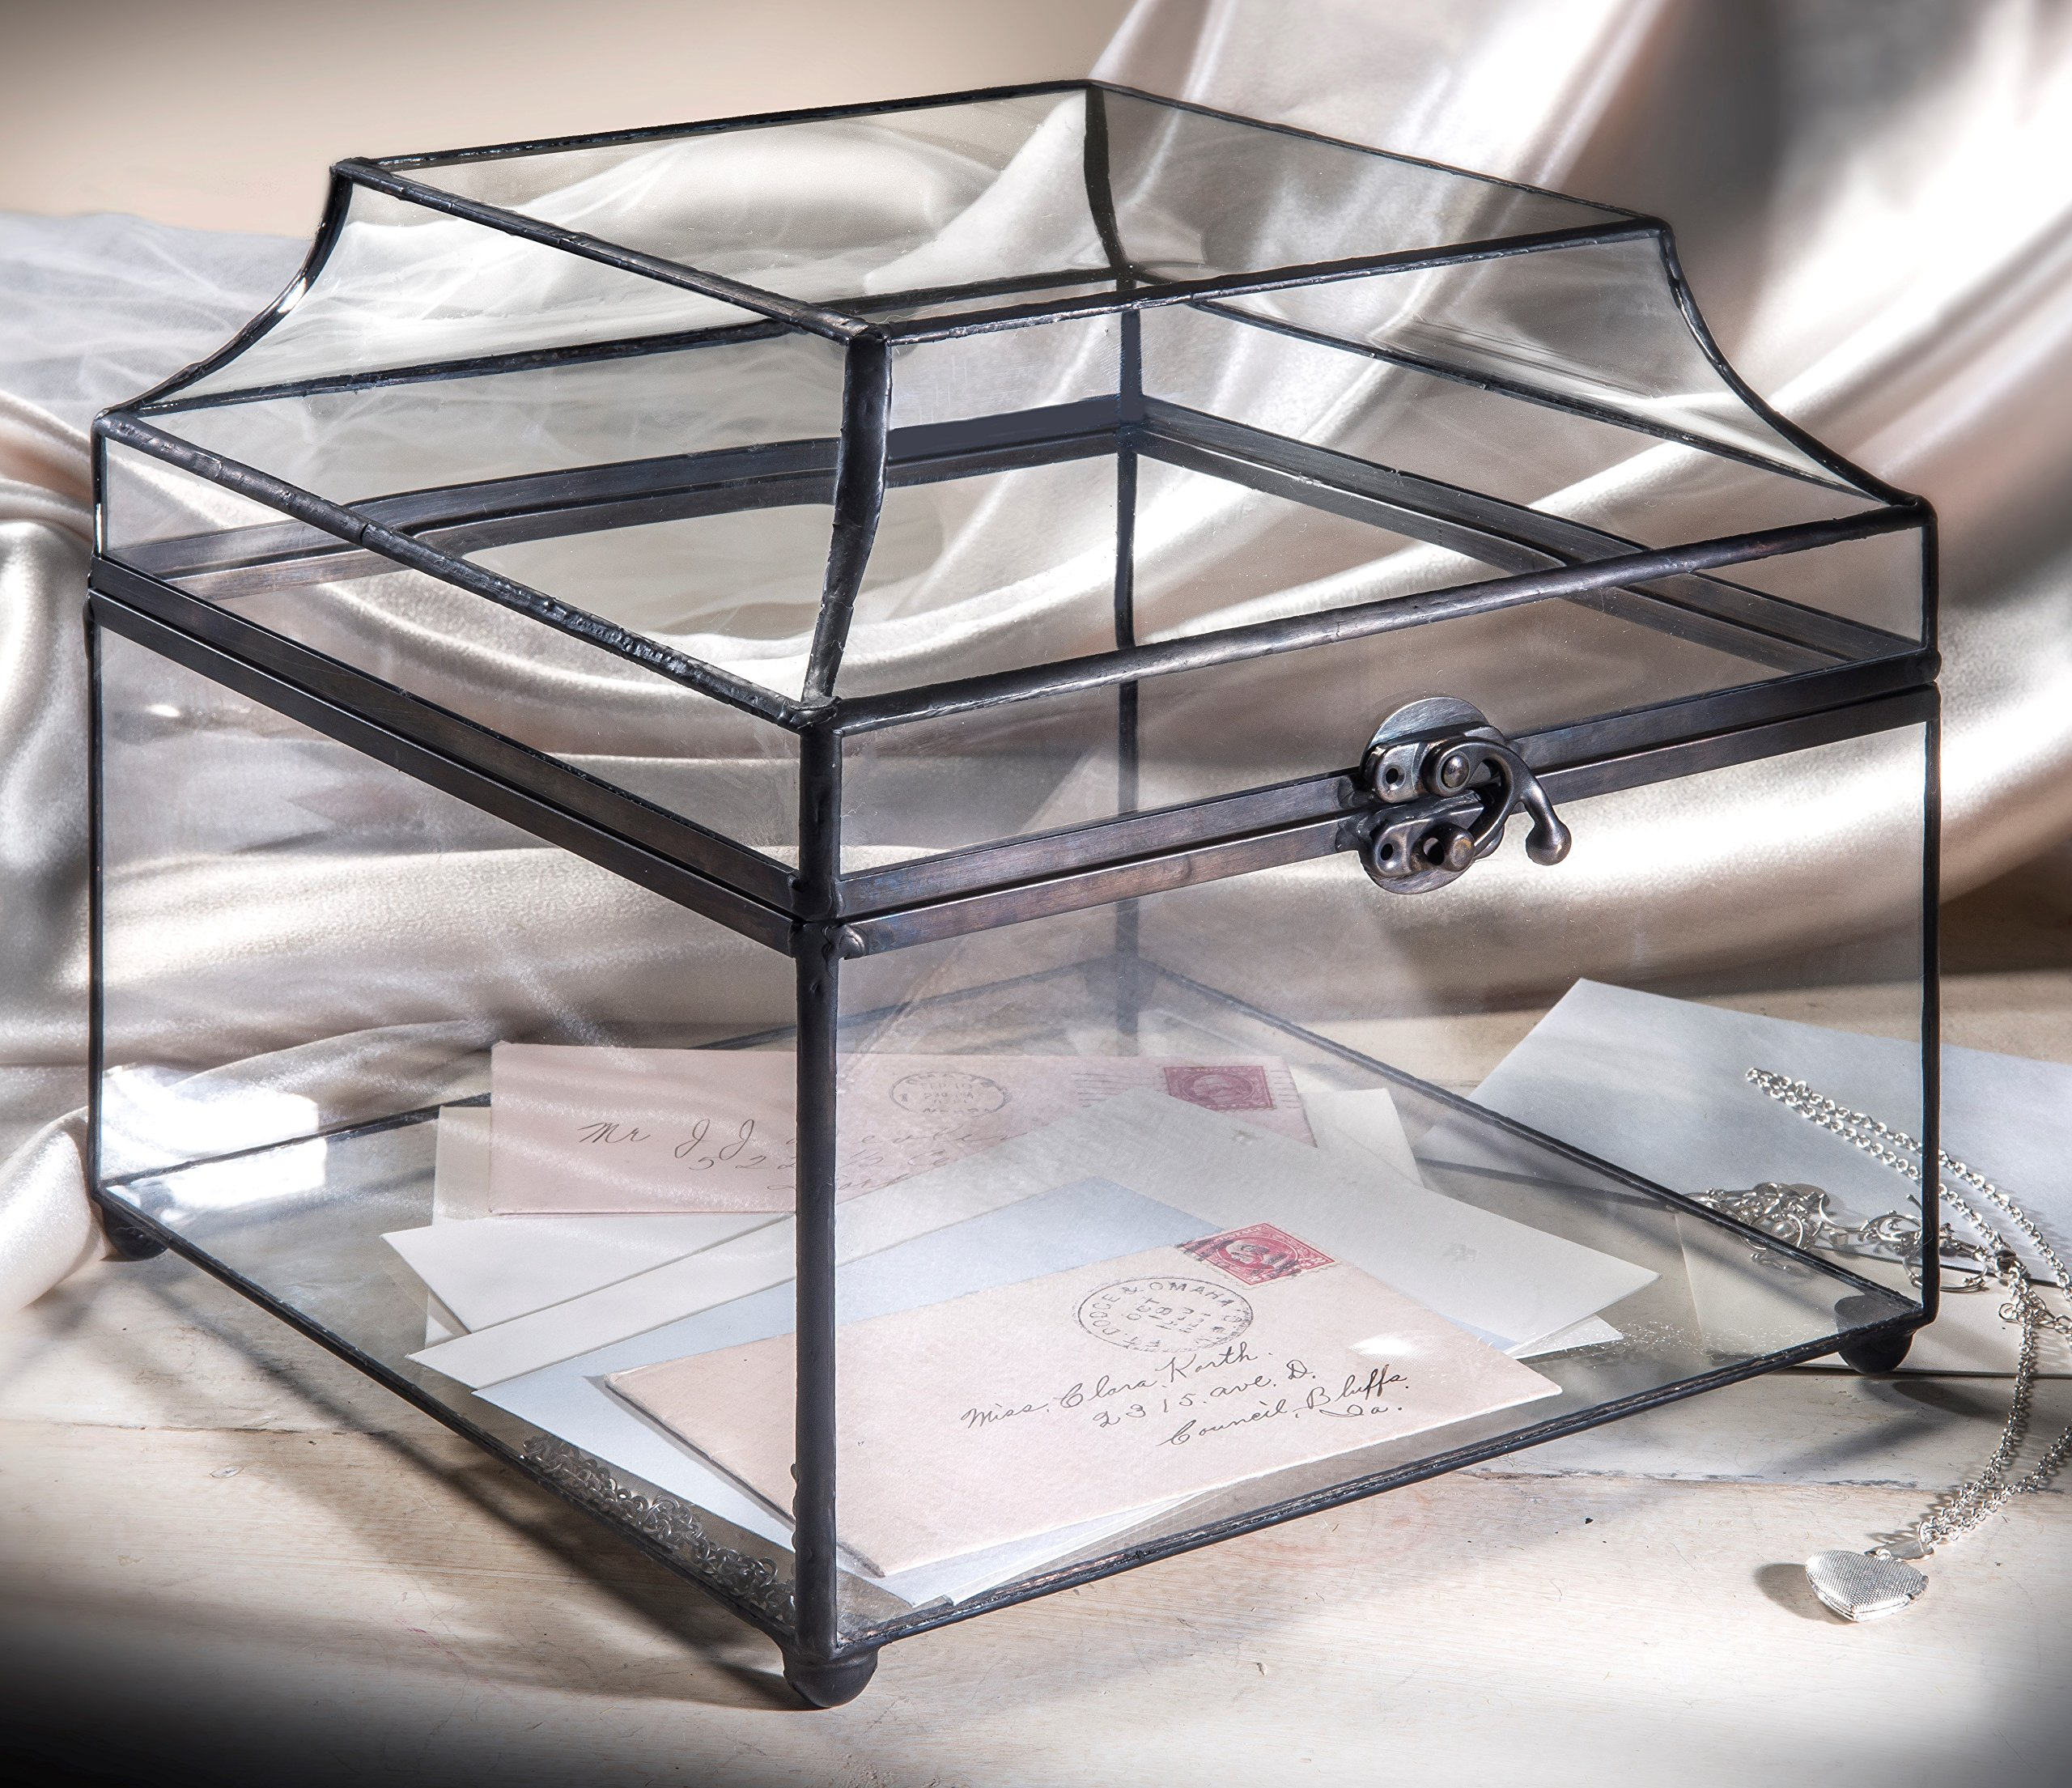 J. Devlin Box 600 Large Clear Glass Box Wedding Card Holder Reception Card Box Keepsake Display Case Decorative Home Decor